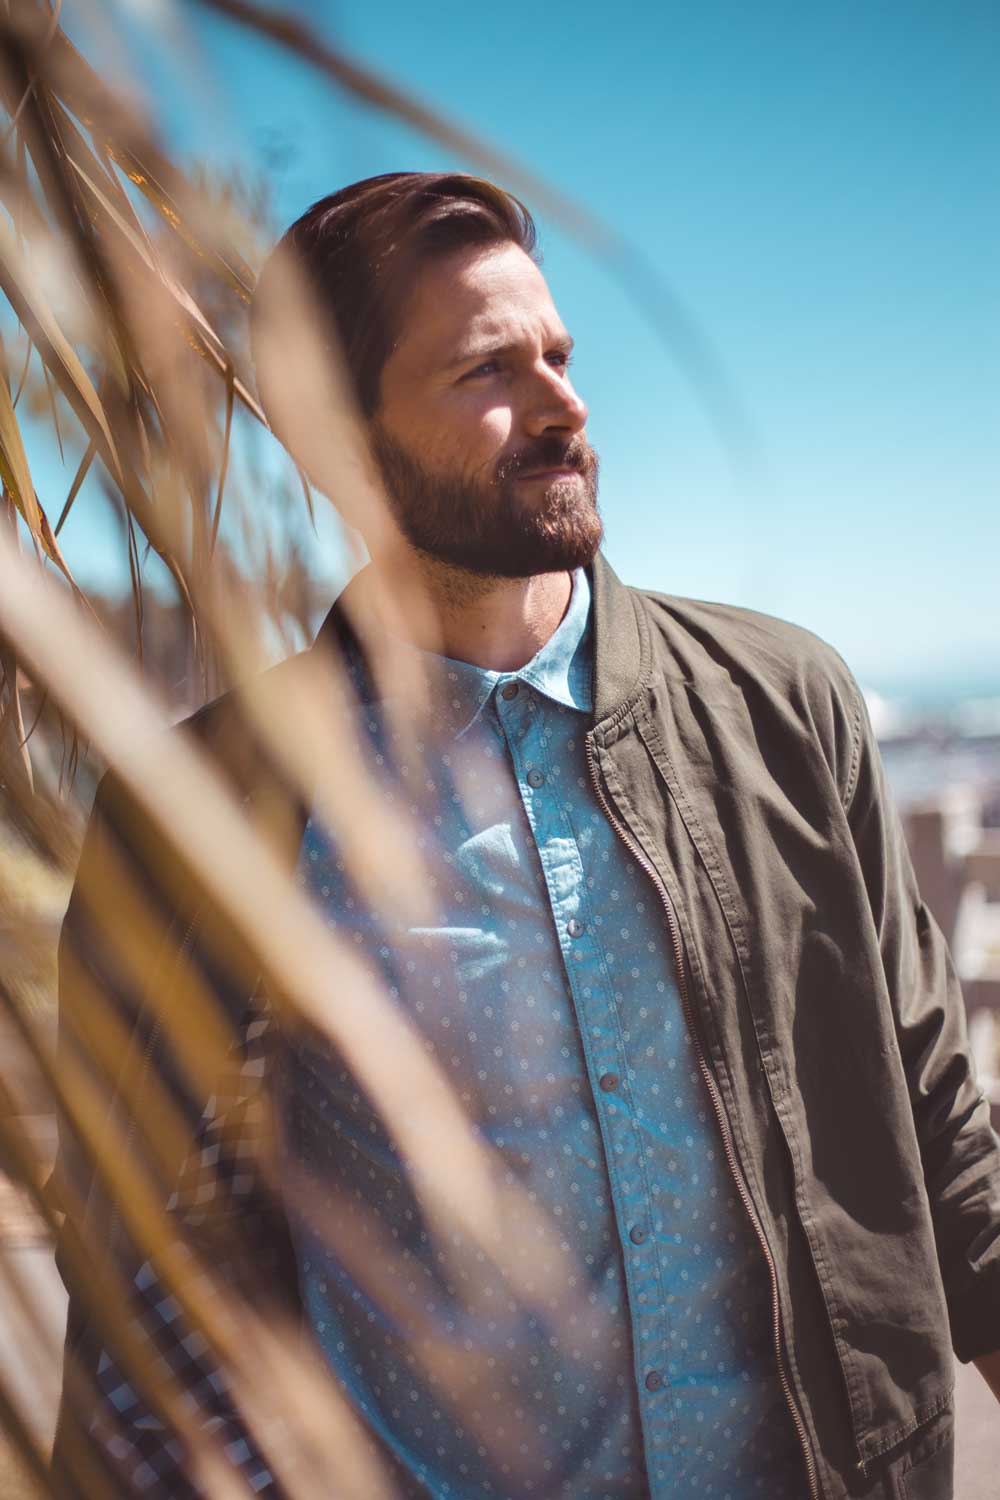 Photo of man wearing a jacket and button up shirt